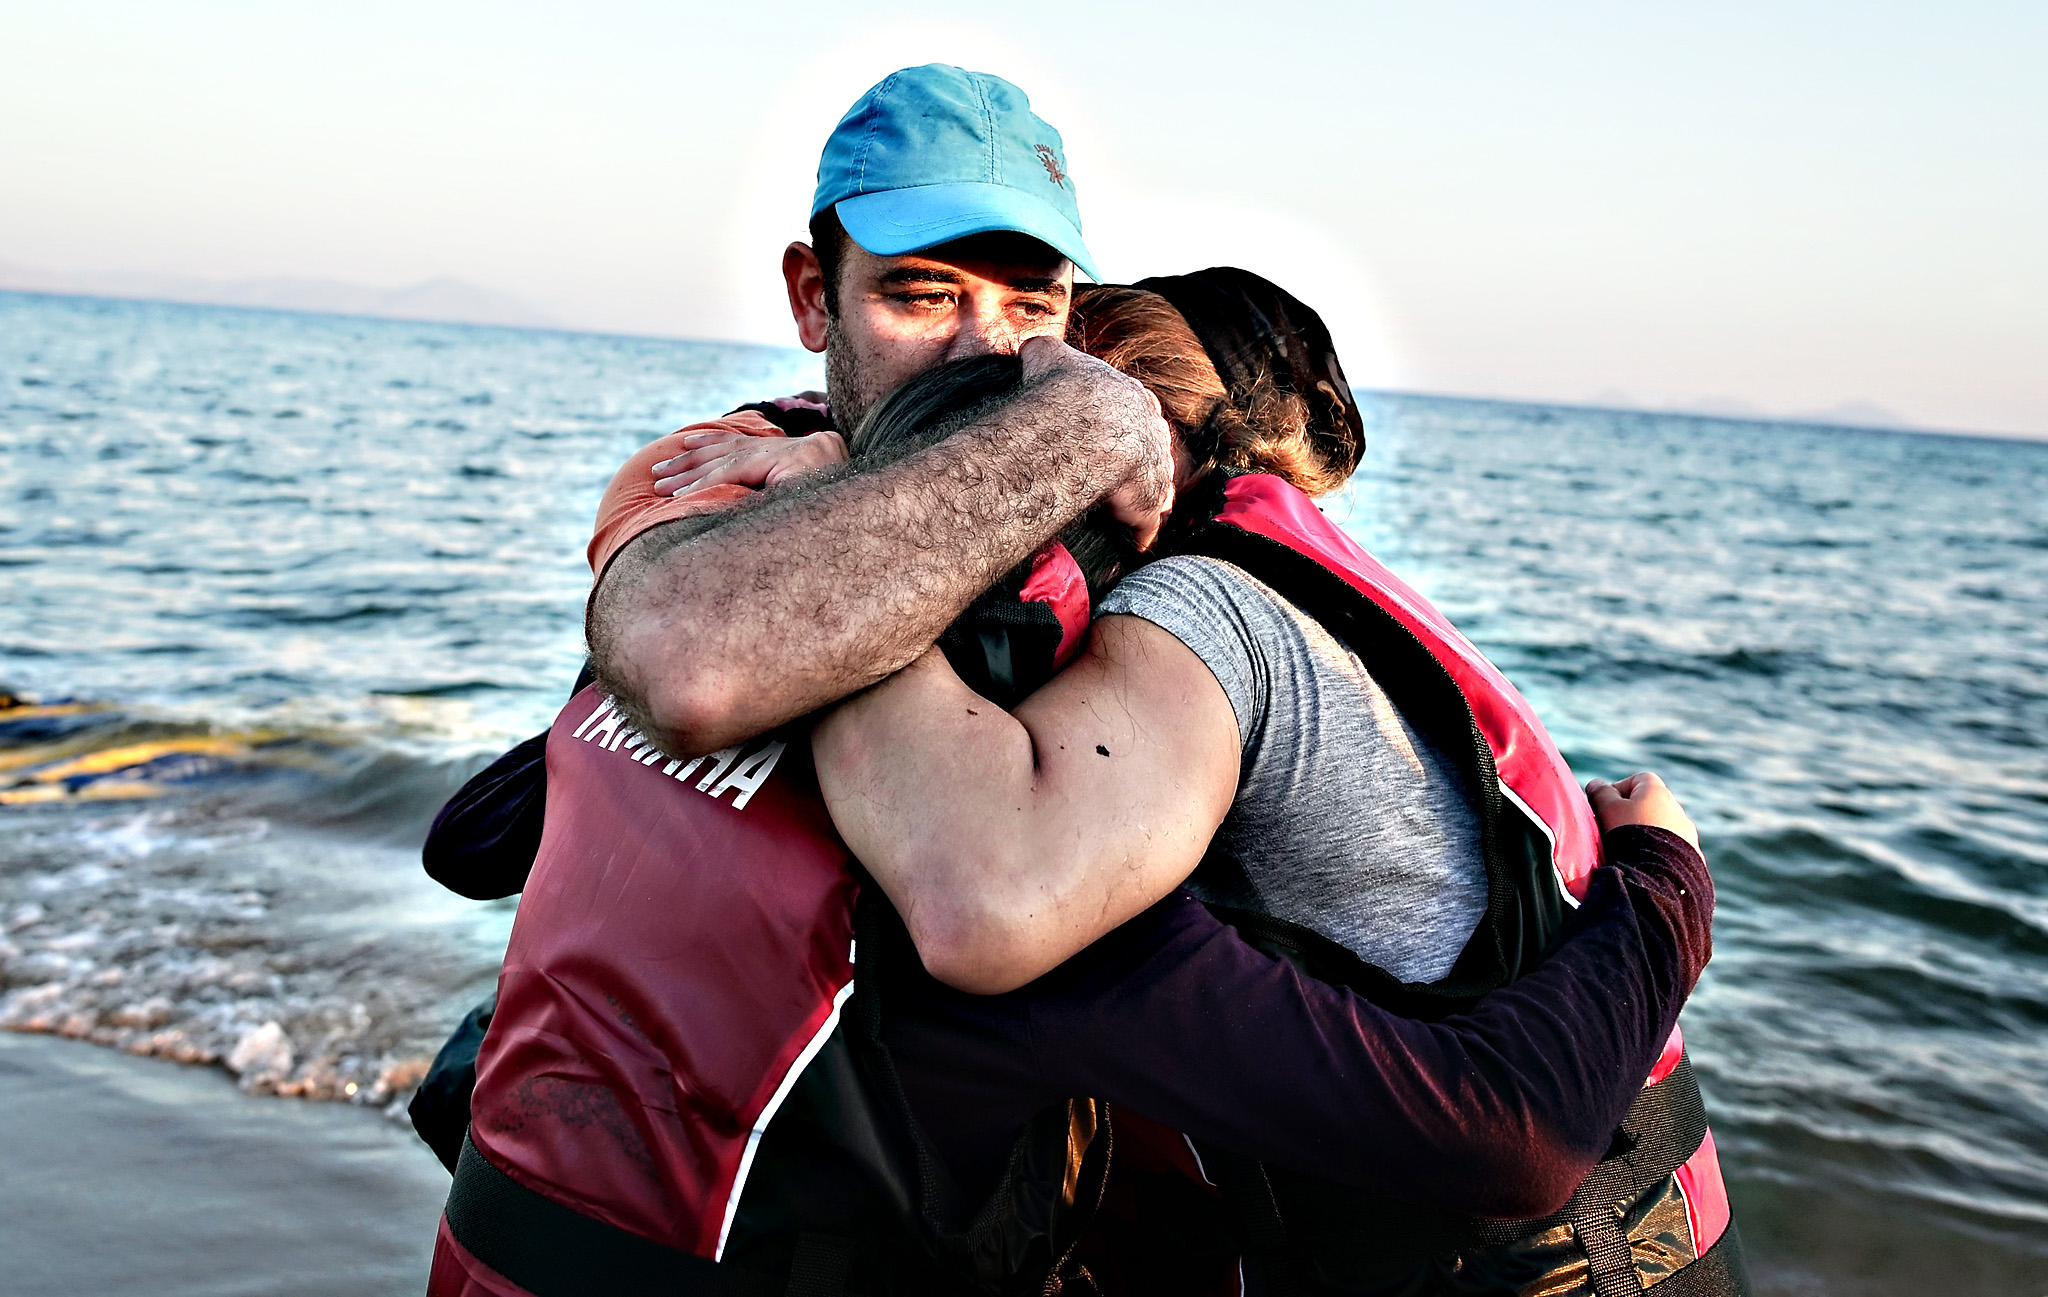 A migrant hugs his family after safetly arriving to the shores of Kos island from Turkey on Tuesday. Authorities on the island of Kos have been so overwhelmed that the government sent a ferry to serve as a temporary centre to issue travel documents to Syrian refugees -- among some 7,000 migrants stranded on the island of about 30,000 people. The early hours are the safest time for migrants travelling from Turkey to the Greek islands just across the water, which have seen a huge influx of refugees escaping the civil war in Syria and chaos in Afghanistan since the beginning of this year.